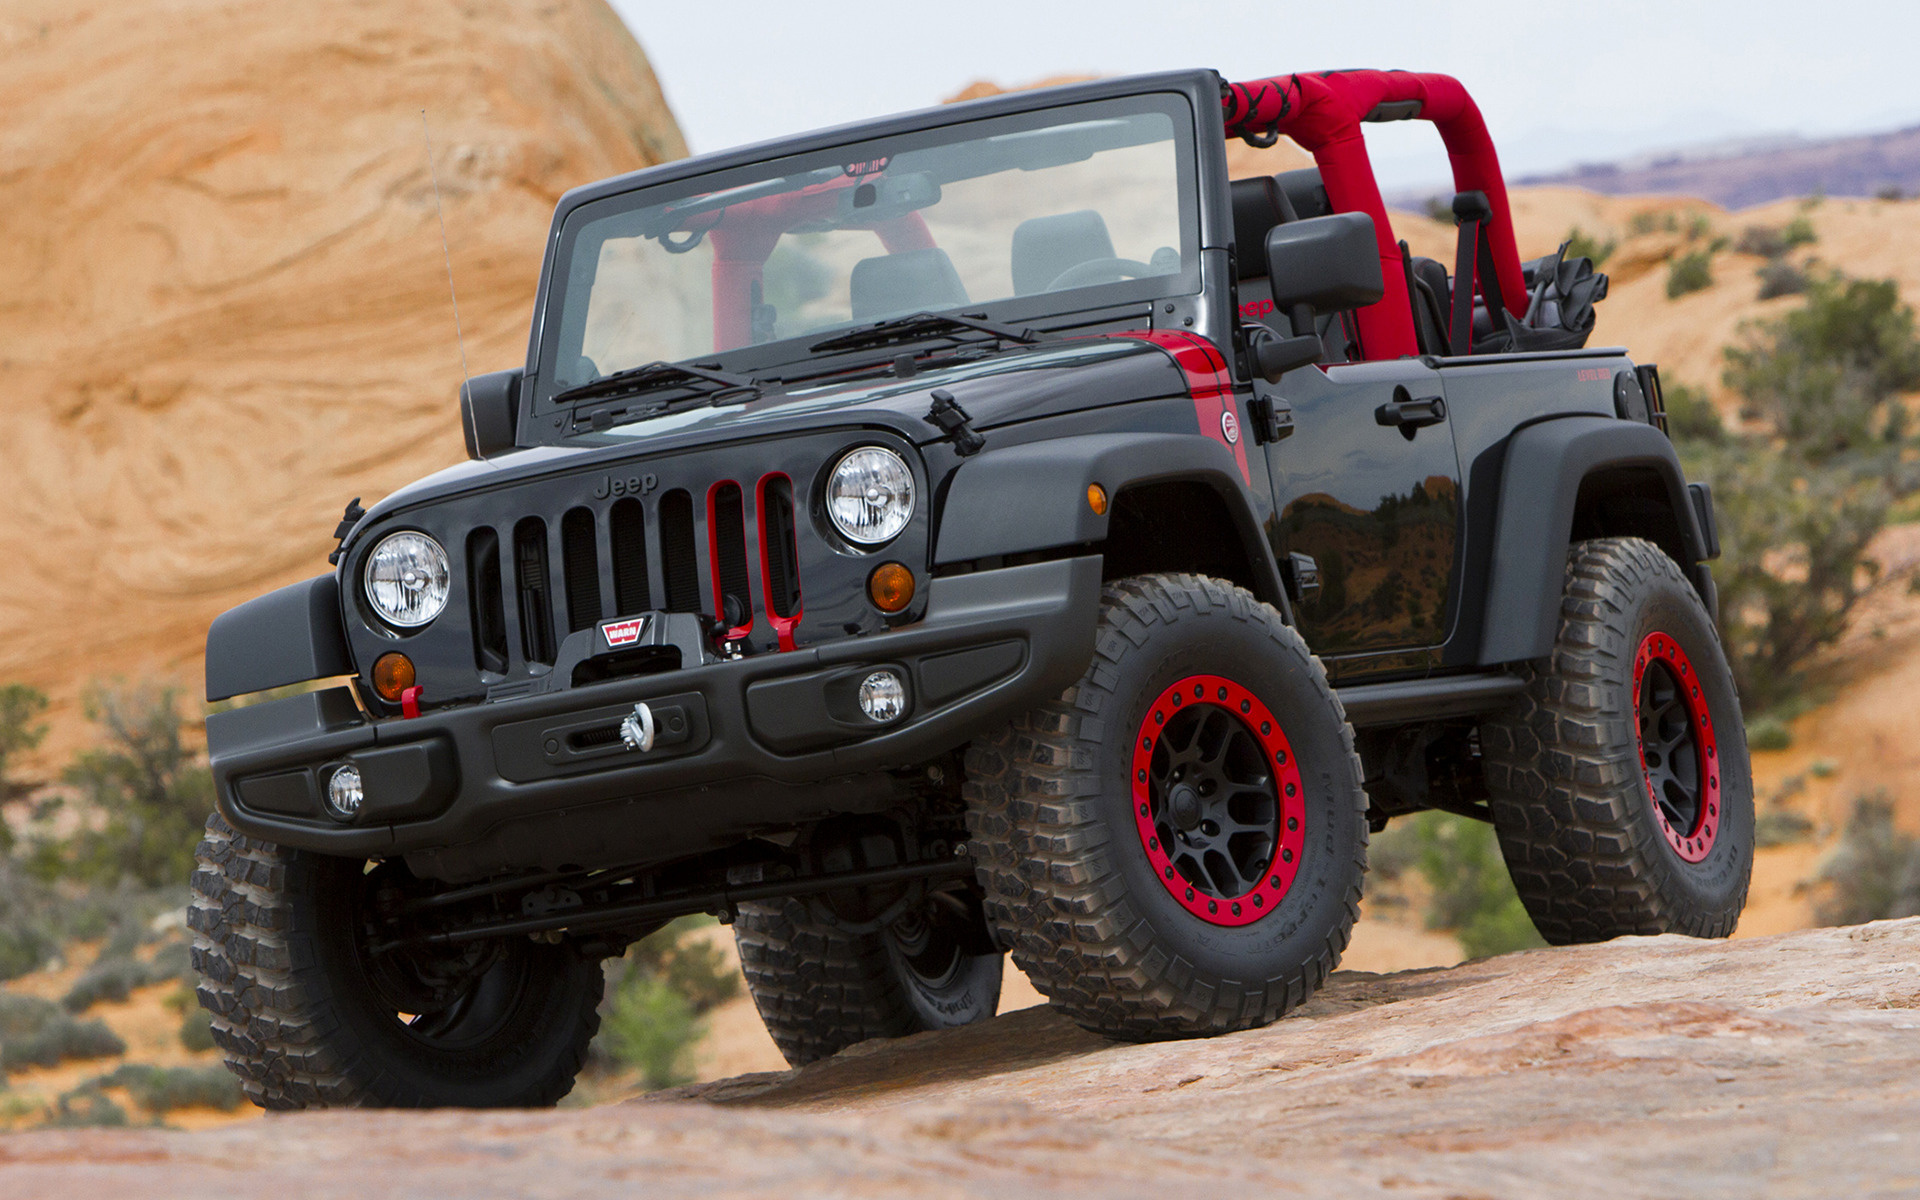 Exceptionnel Wide 8:5 · Jeep Wrangler ...